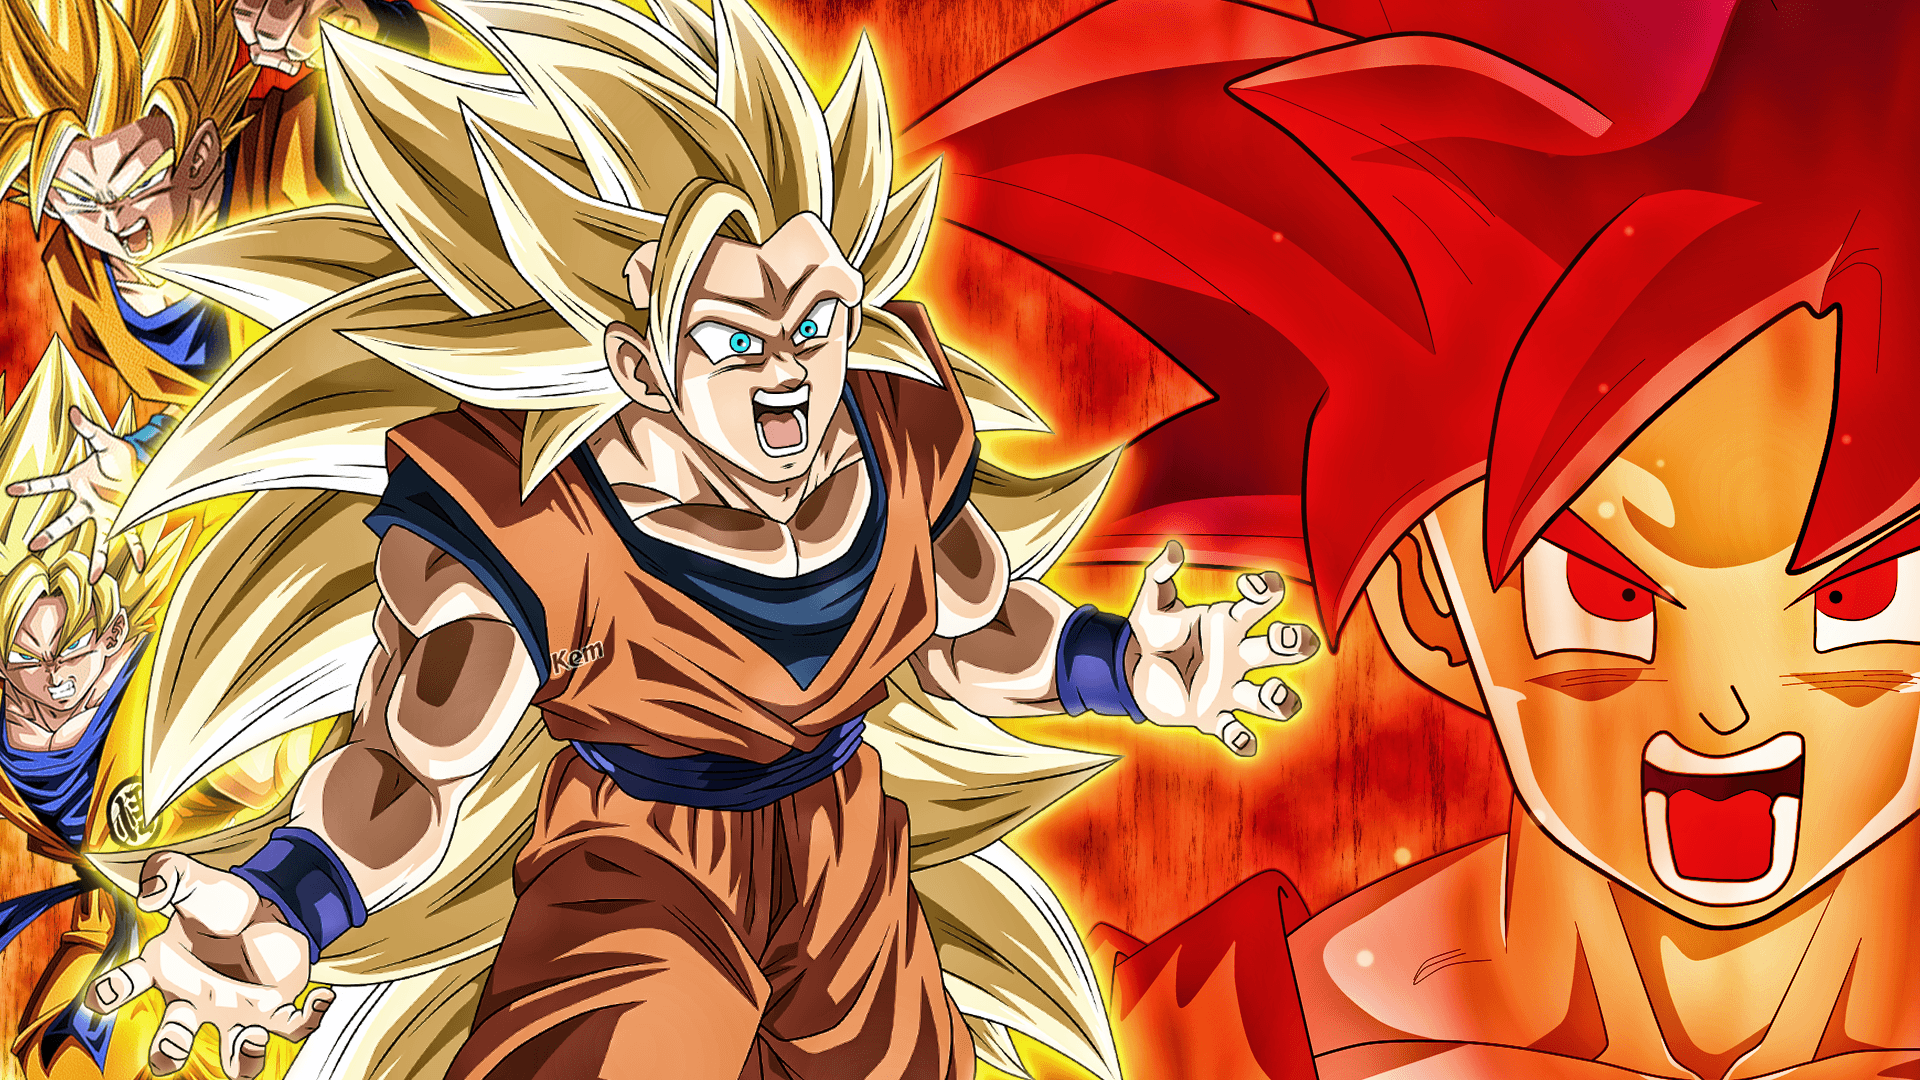 Goku Ssj3 Wallpapers Top Free Goku Ssj3 Backgrounds